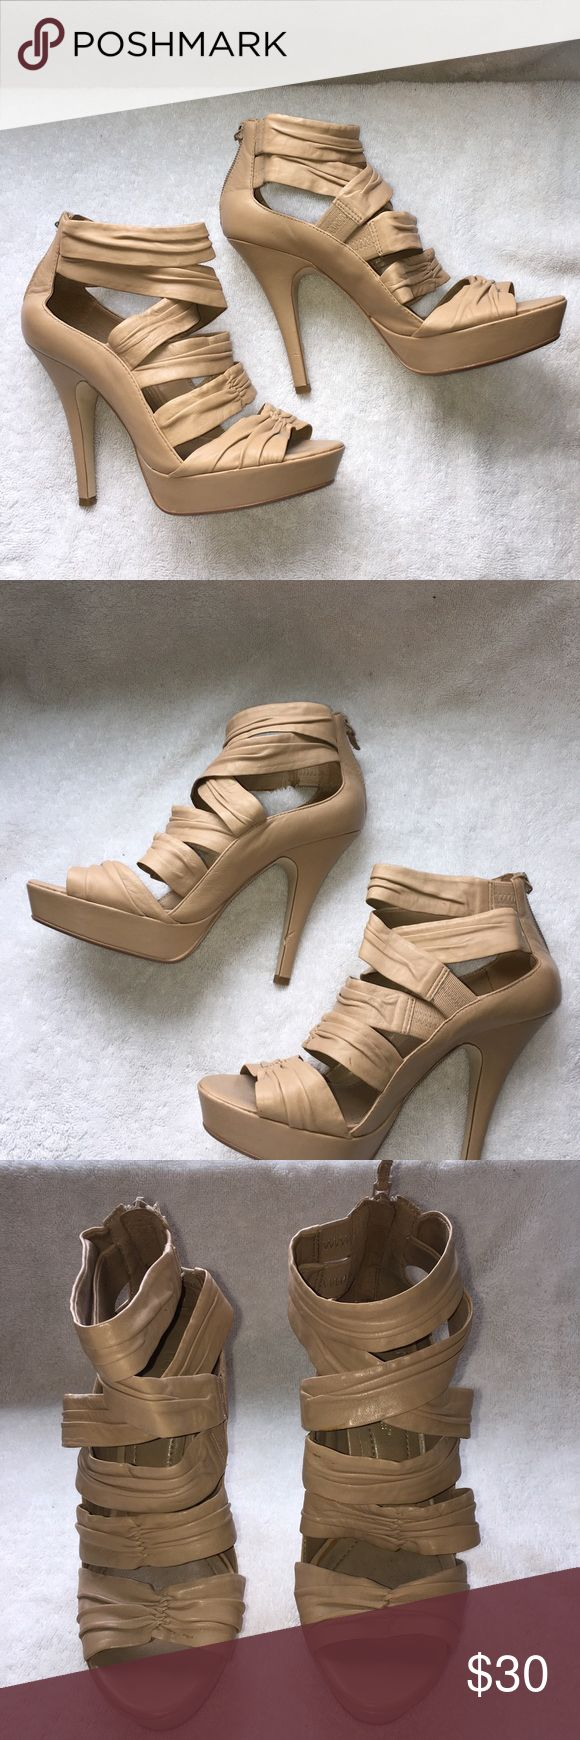 """BCBGeneration Strap Platform Heels Brand:  BCBGeneration Style:  Unk Size:  7.5 Color:  Nude  Features: — Leather upper — Ankle back zip up — Elastic Ankle sides — 4"""" leather covered heel — 1"""" leather covered platform   🛍 Slightly Used - Excellent Condition BCBGeneration Shoes Heels"""